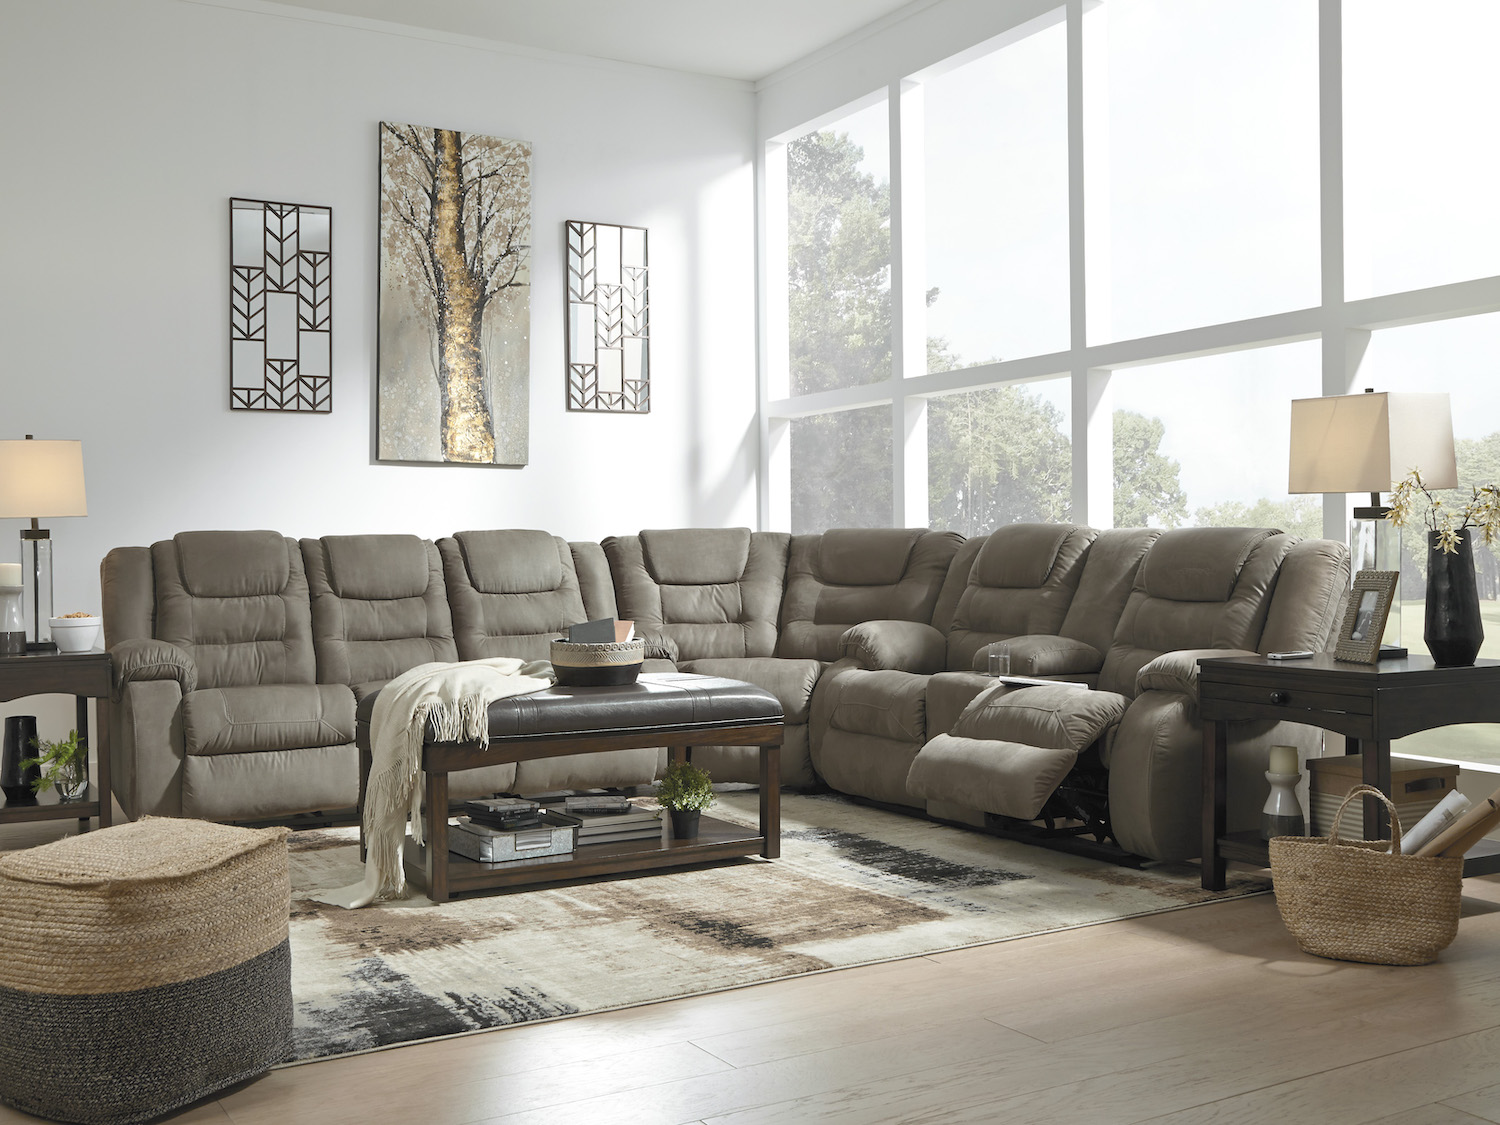 McCade Recliner Sectional, 10104, Sectionals, McCade Recliner Sectional from Ashley by Midha Furniture serving Brampton, Mississauga, Etobicoke, Toronto, Scraborough, Caledon, Cambridge, Oakville, Markham, Ajax, Pickering, Oshawa, Richmondhill, Kitchener, Hamilton, Cambridge, Waterloo and GTA area